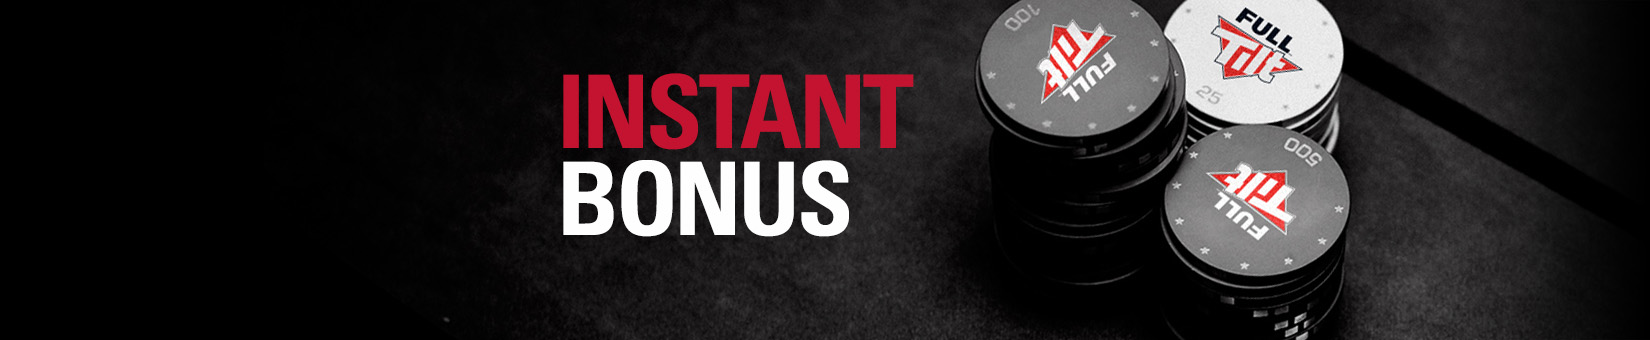 Instant bonus en ingles video tragamonedas-805274